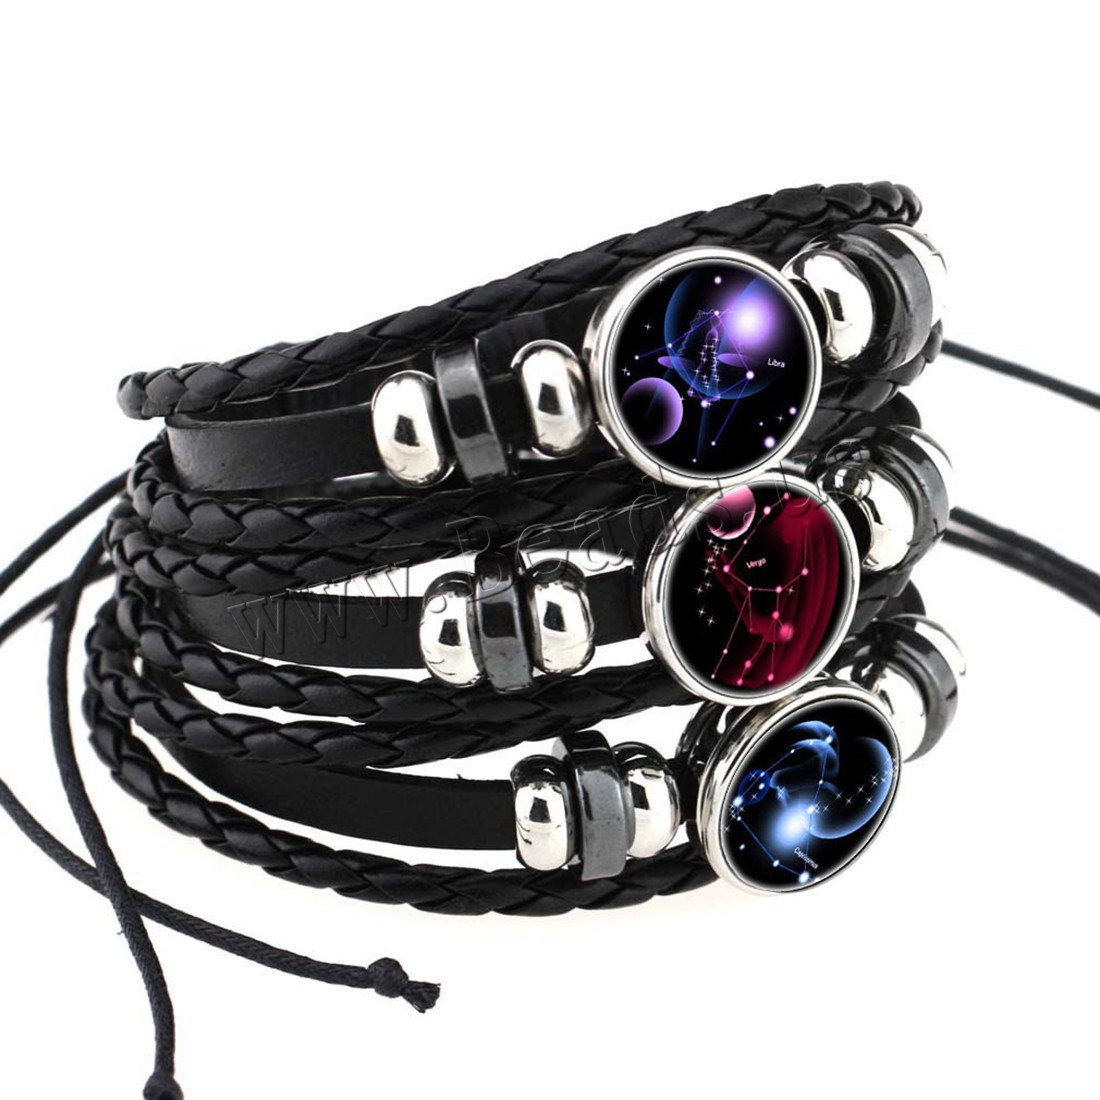 Buy Fashion Time Gem Bracelet Cowhide Paper & Glass & Zinc Alloy 2.5inch extender chain plated time gem jewelry & Unisex & constellation symbols & adjustable & different designs choice & 3-strand nickel lead & cadmium free 18mm Sold Per Approx 7.5-11 Inch Strand